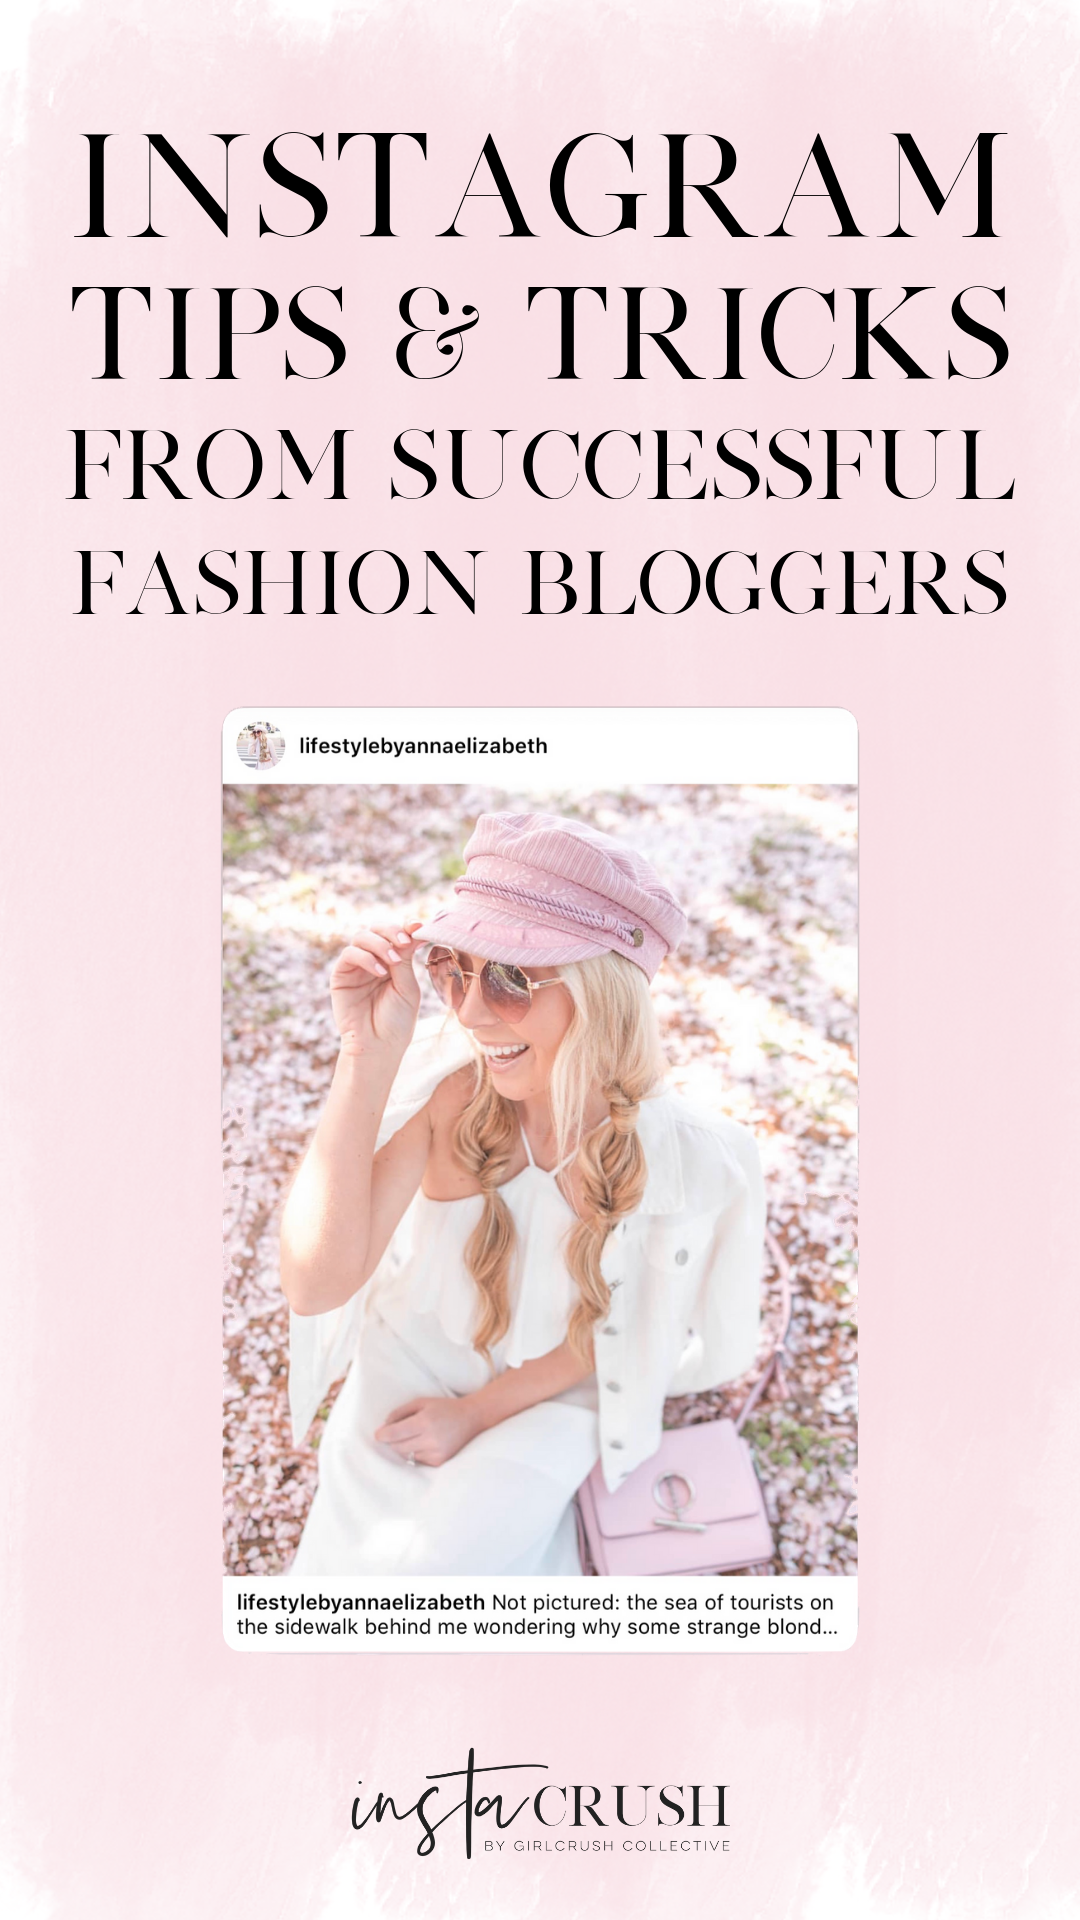 fashion bloggers share their best tips and tricks for a successful instagram account